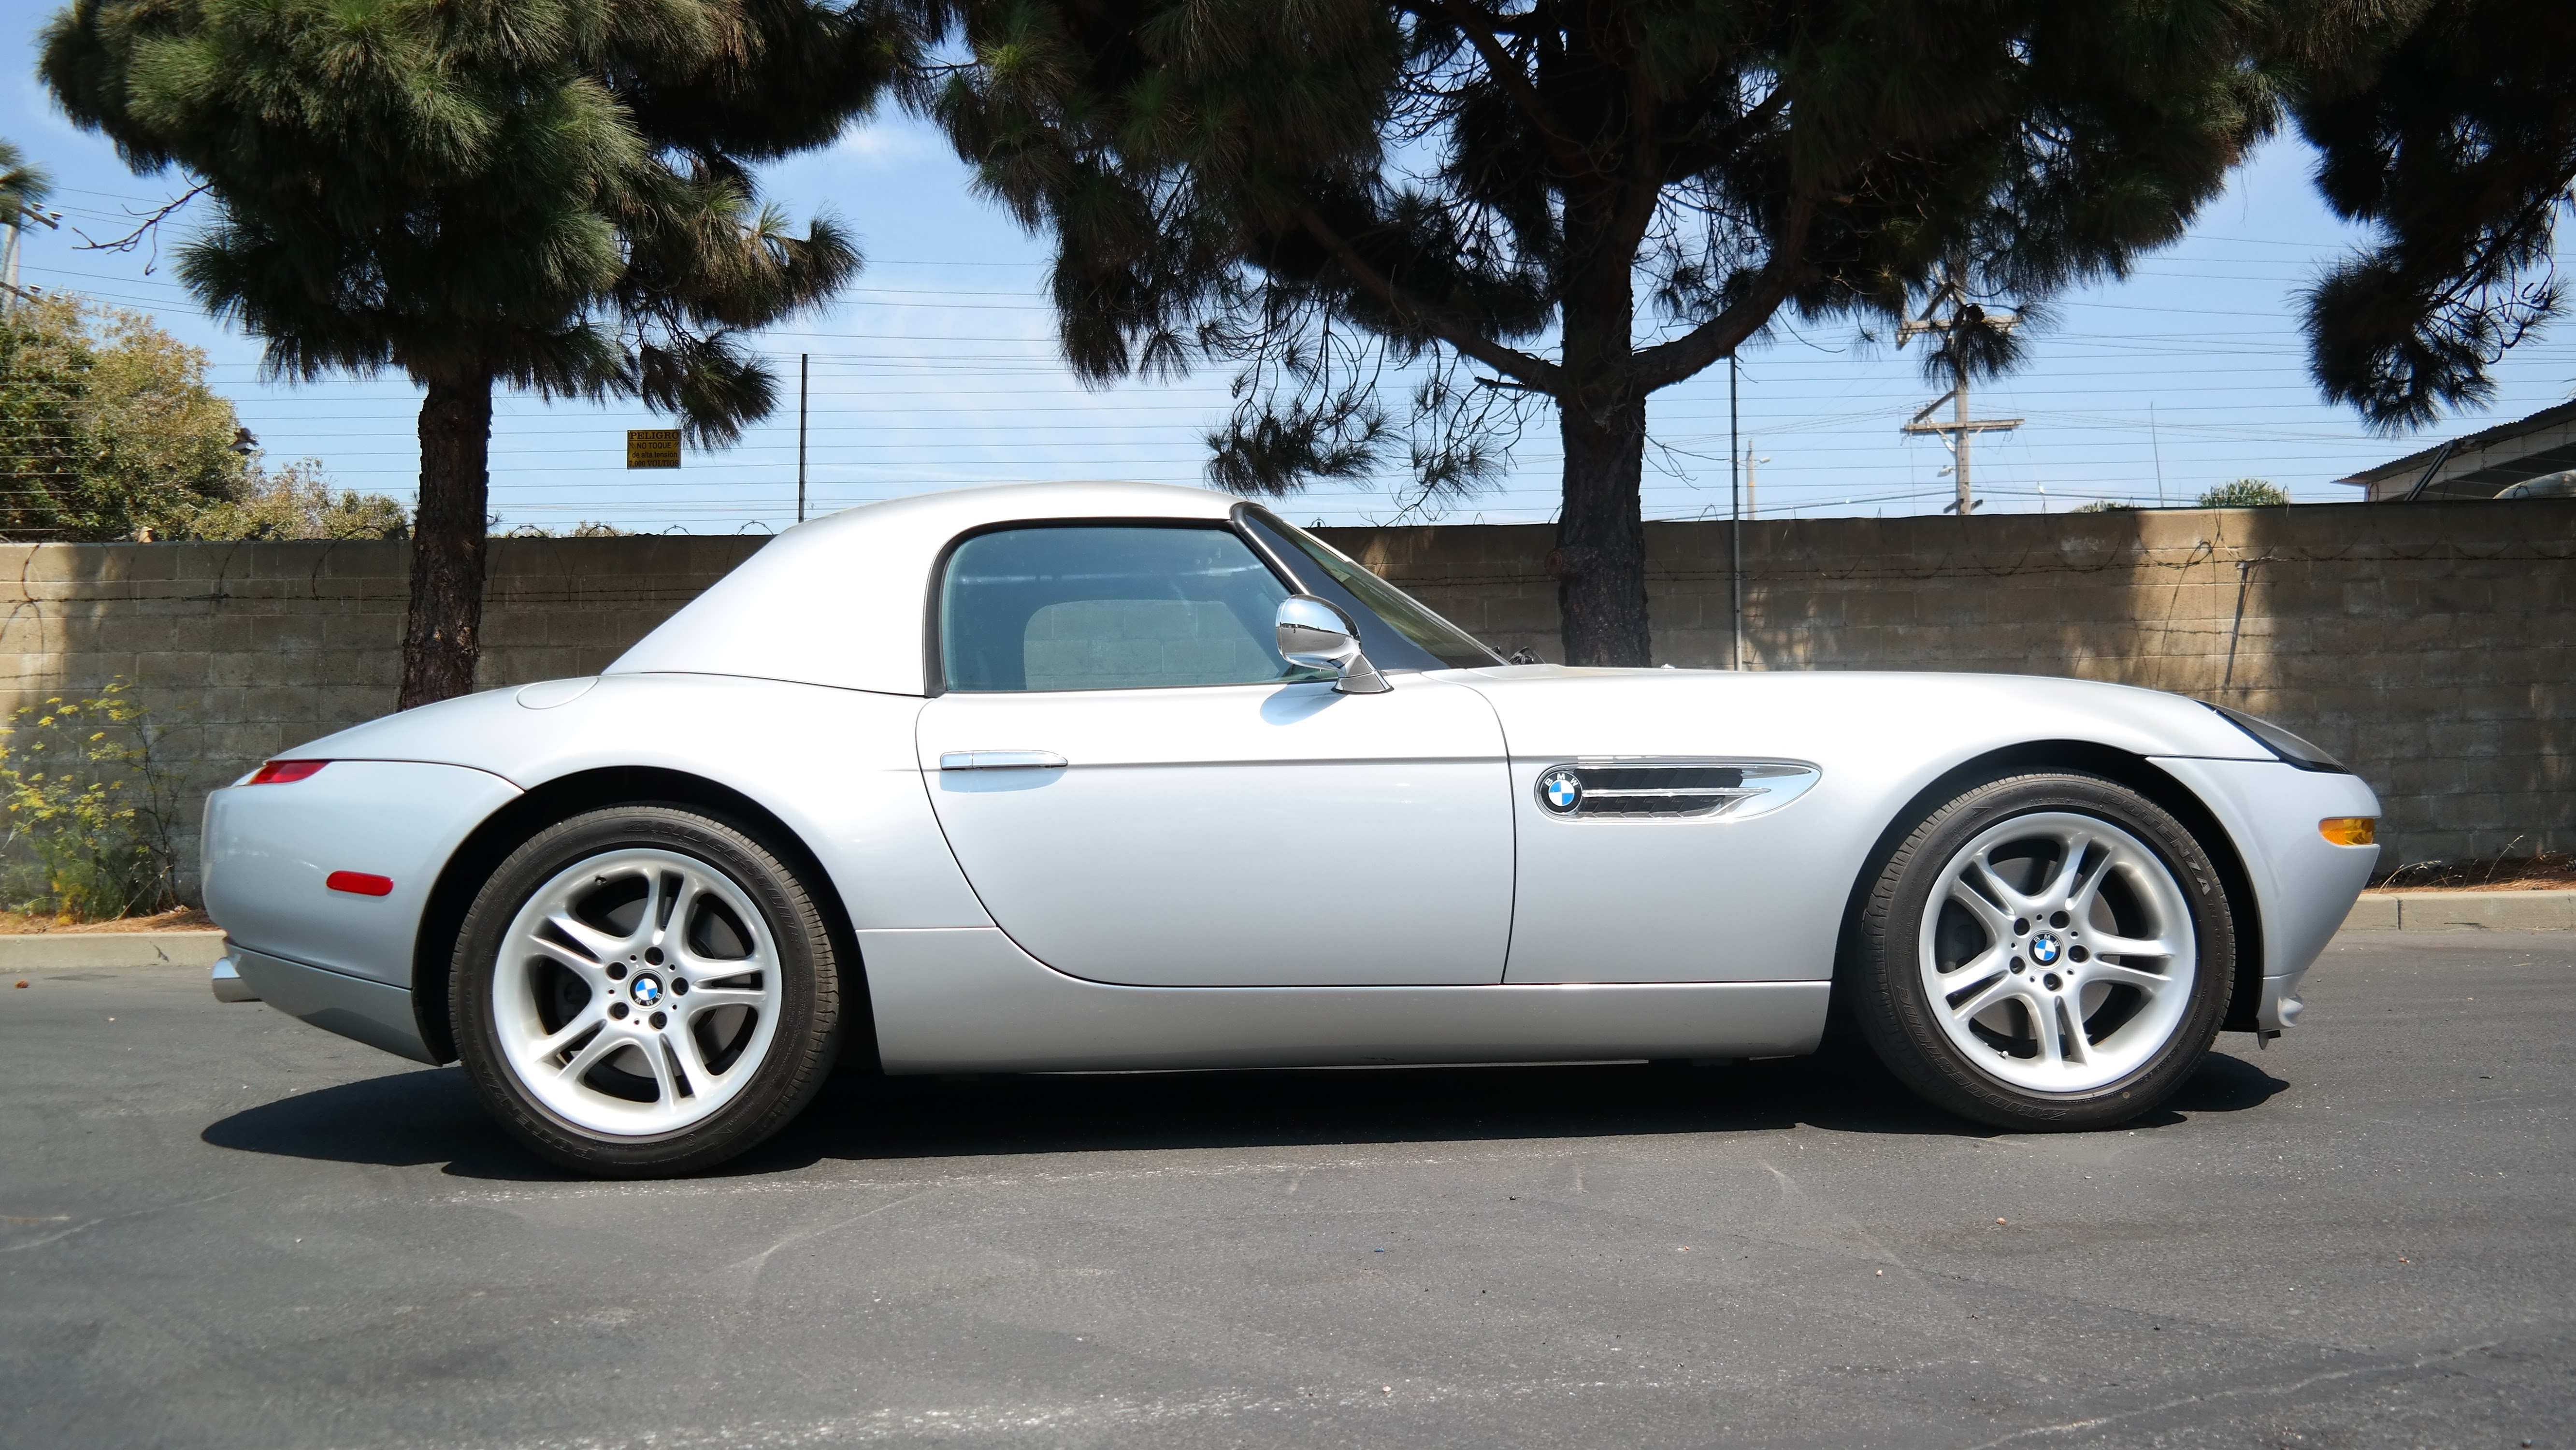 BMW Z8 International car shipping